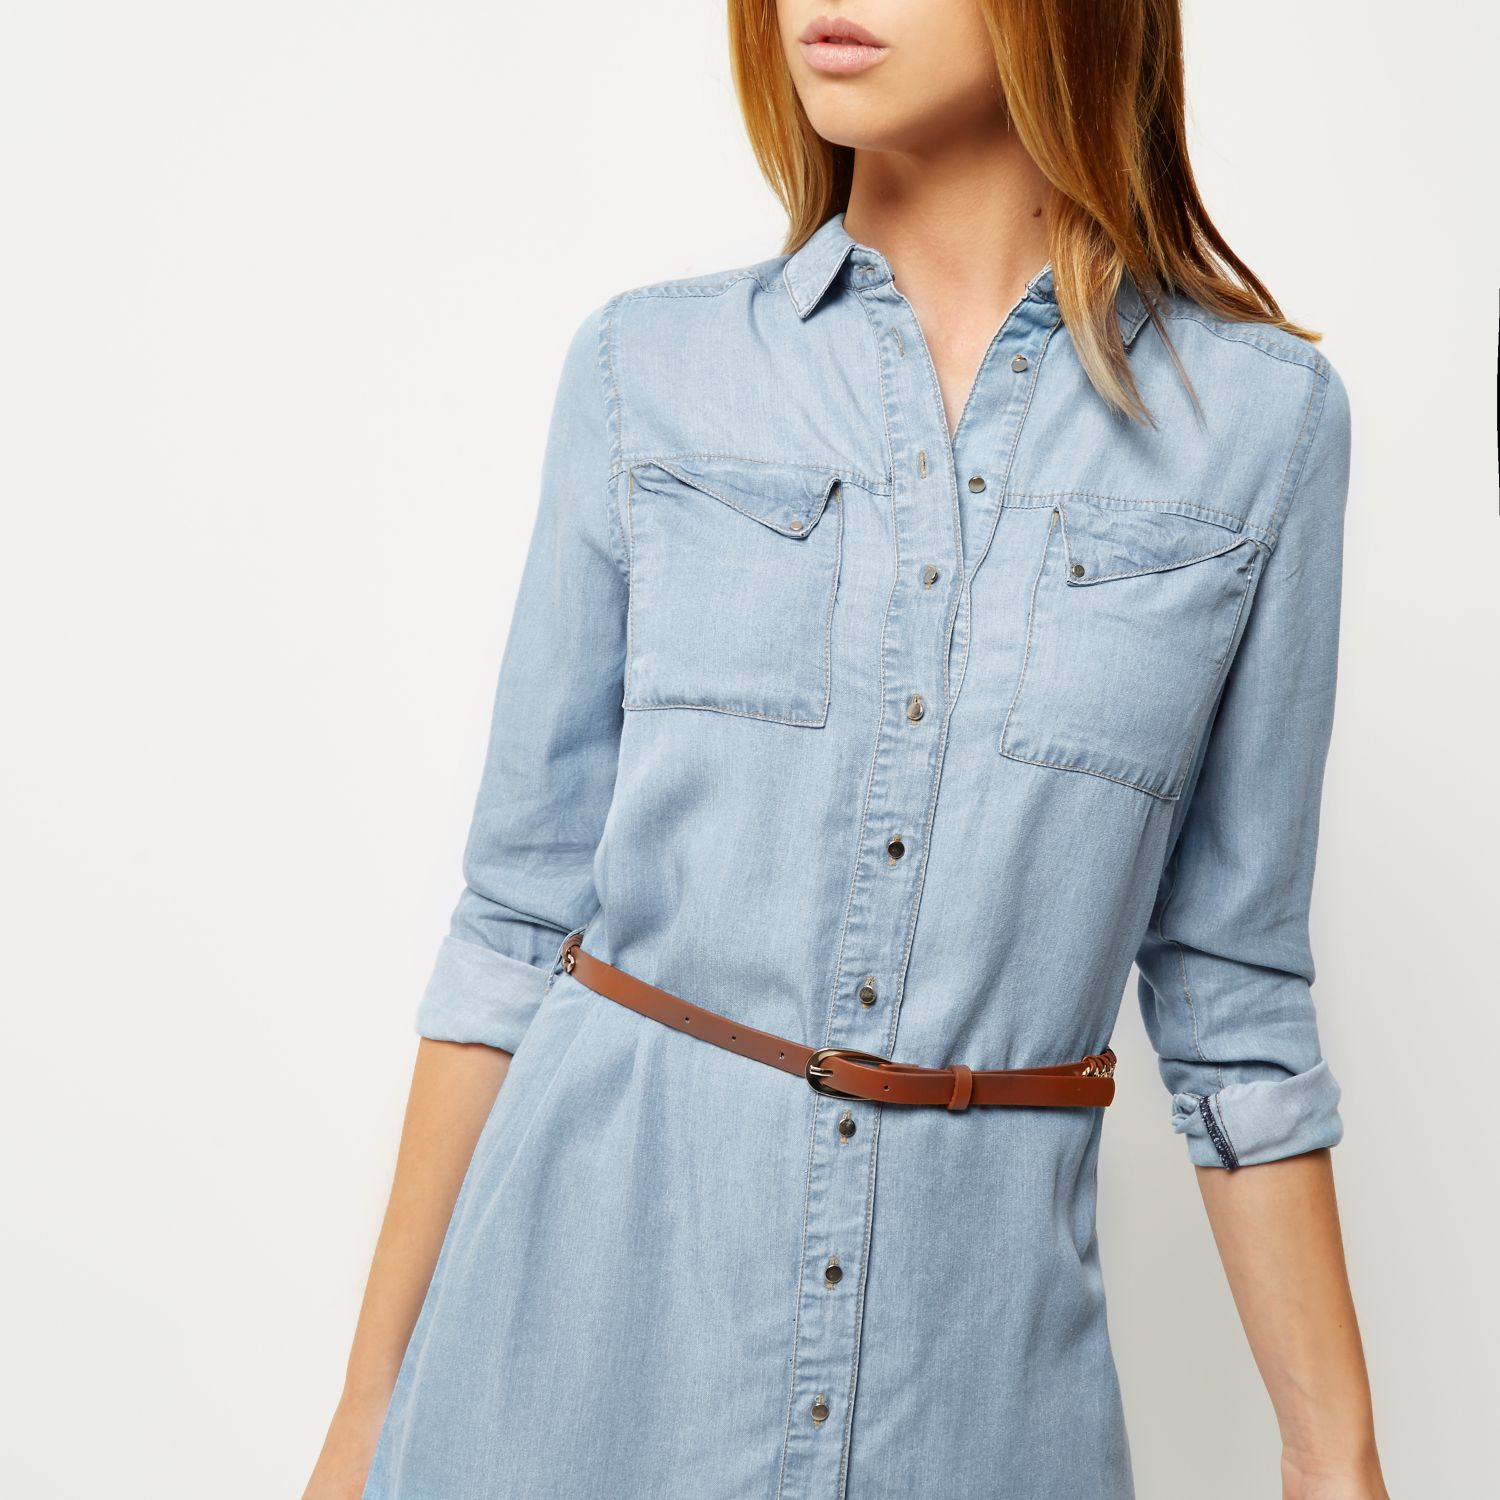 lyst river island light blue denim shirt dress in blue